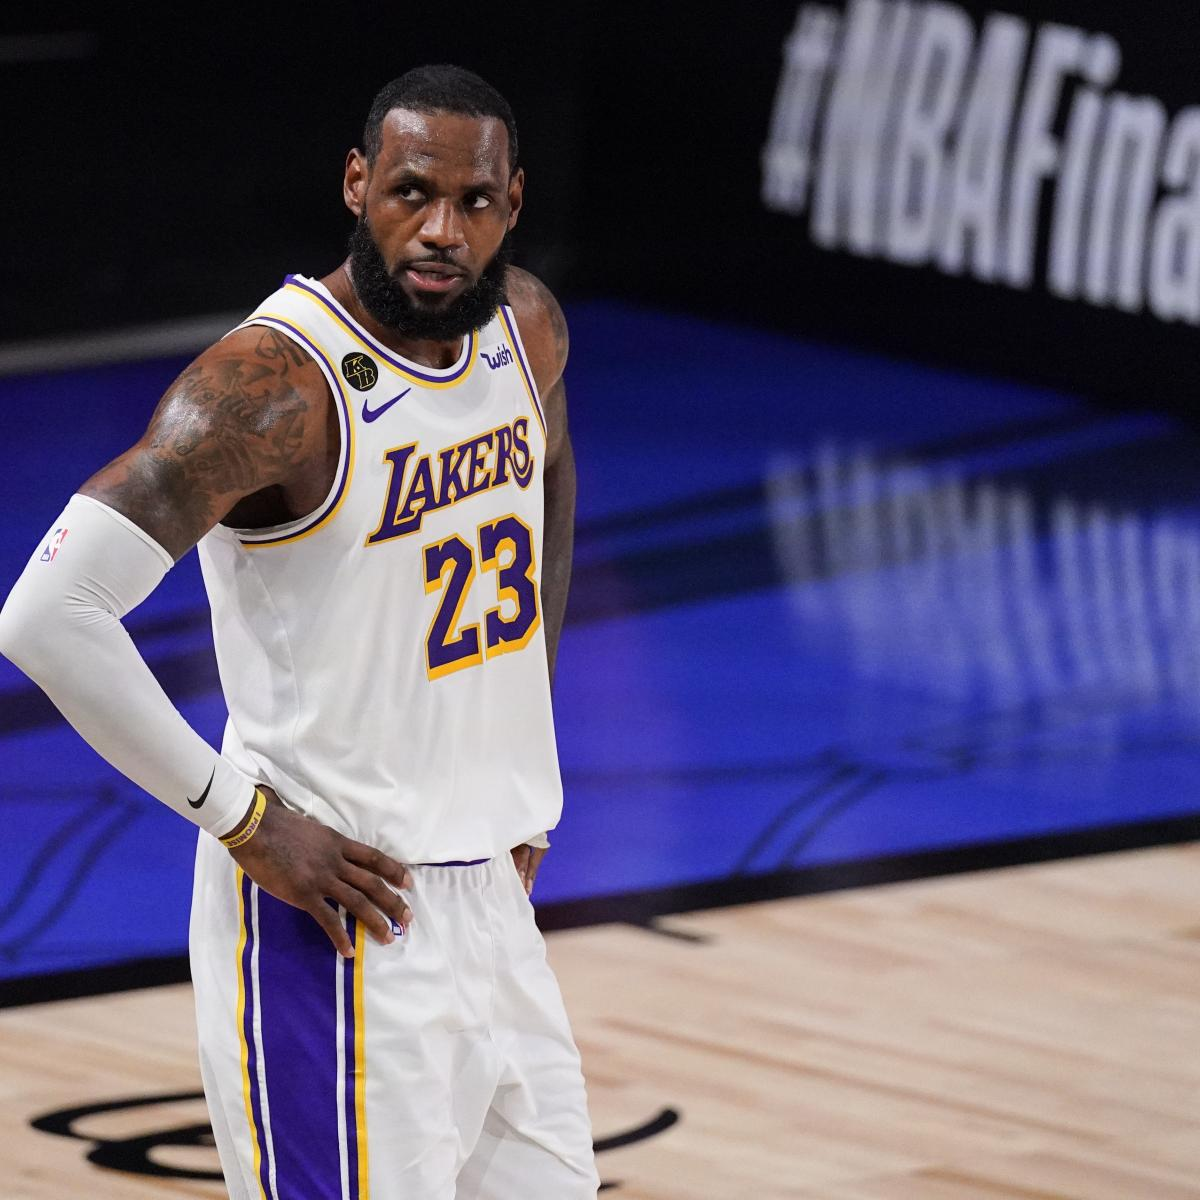 LeBron James and the NBA's All-Time Greatest Stars over 35